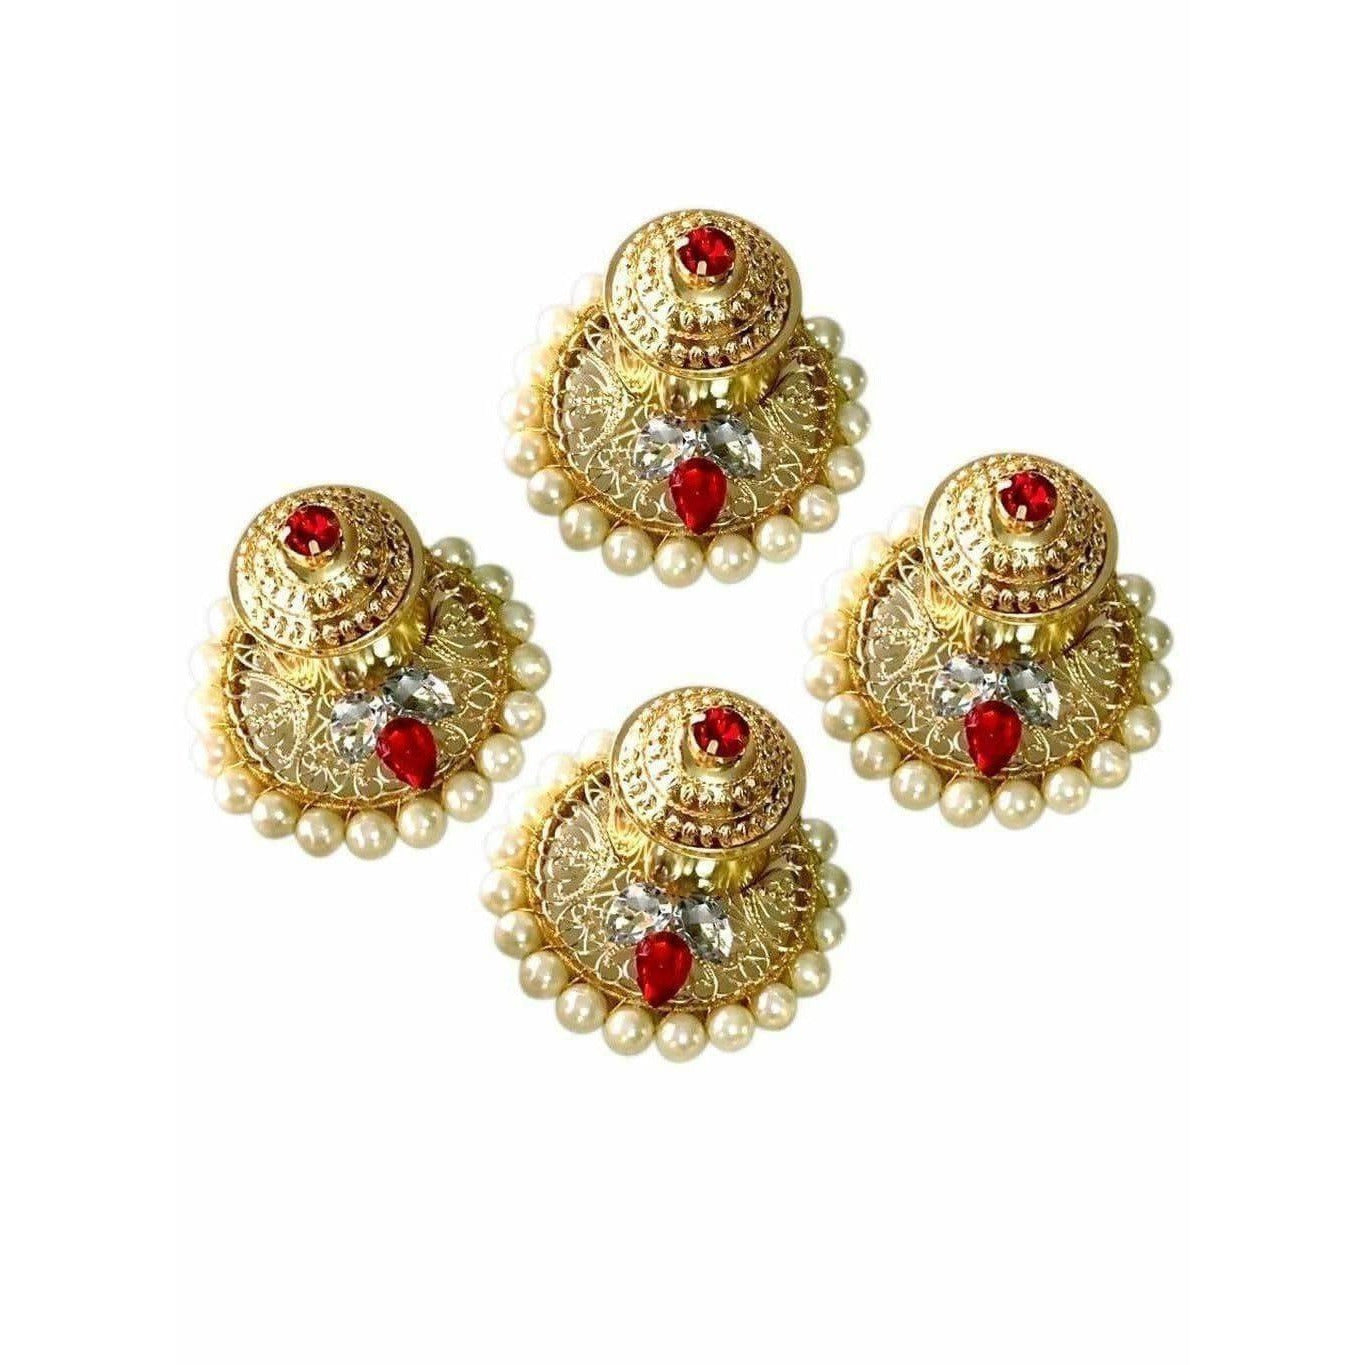 Fancy Kumkum Holders with Pearls and Kundans - 1 Piece